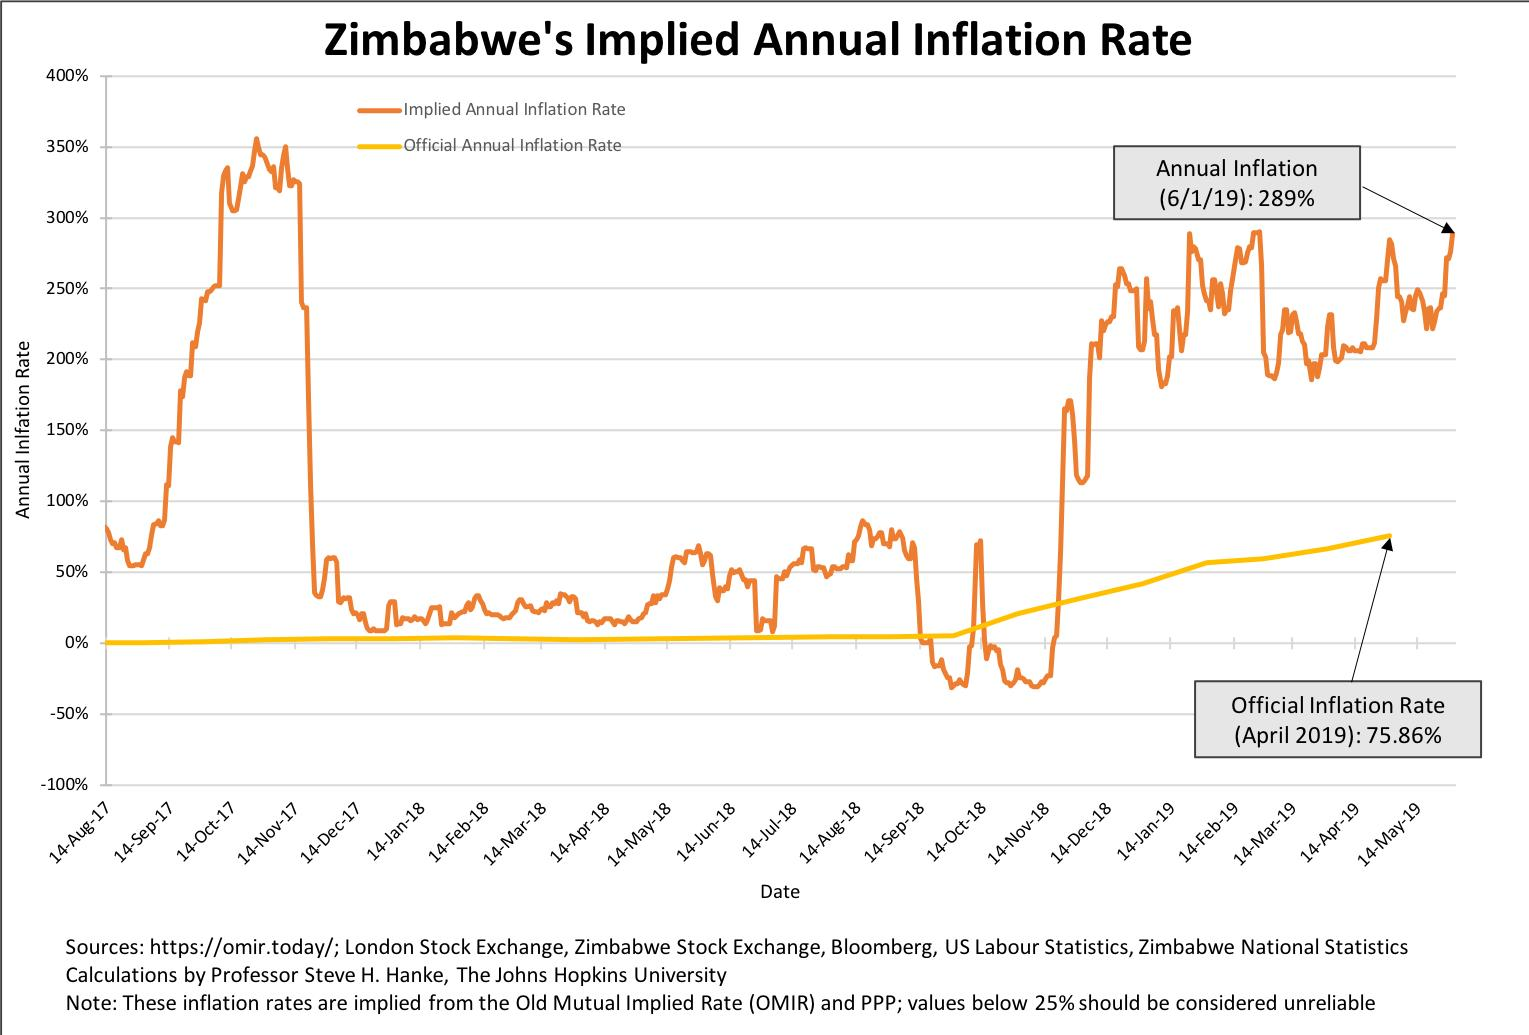 zimbabwe-s-implied-annual-inflation-rate